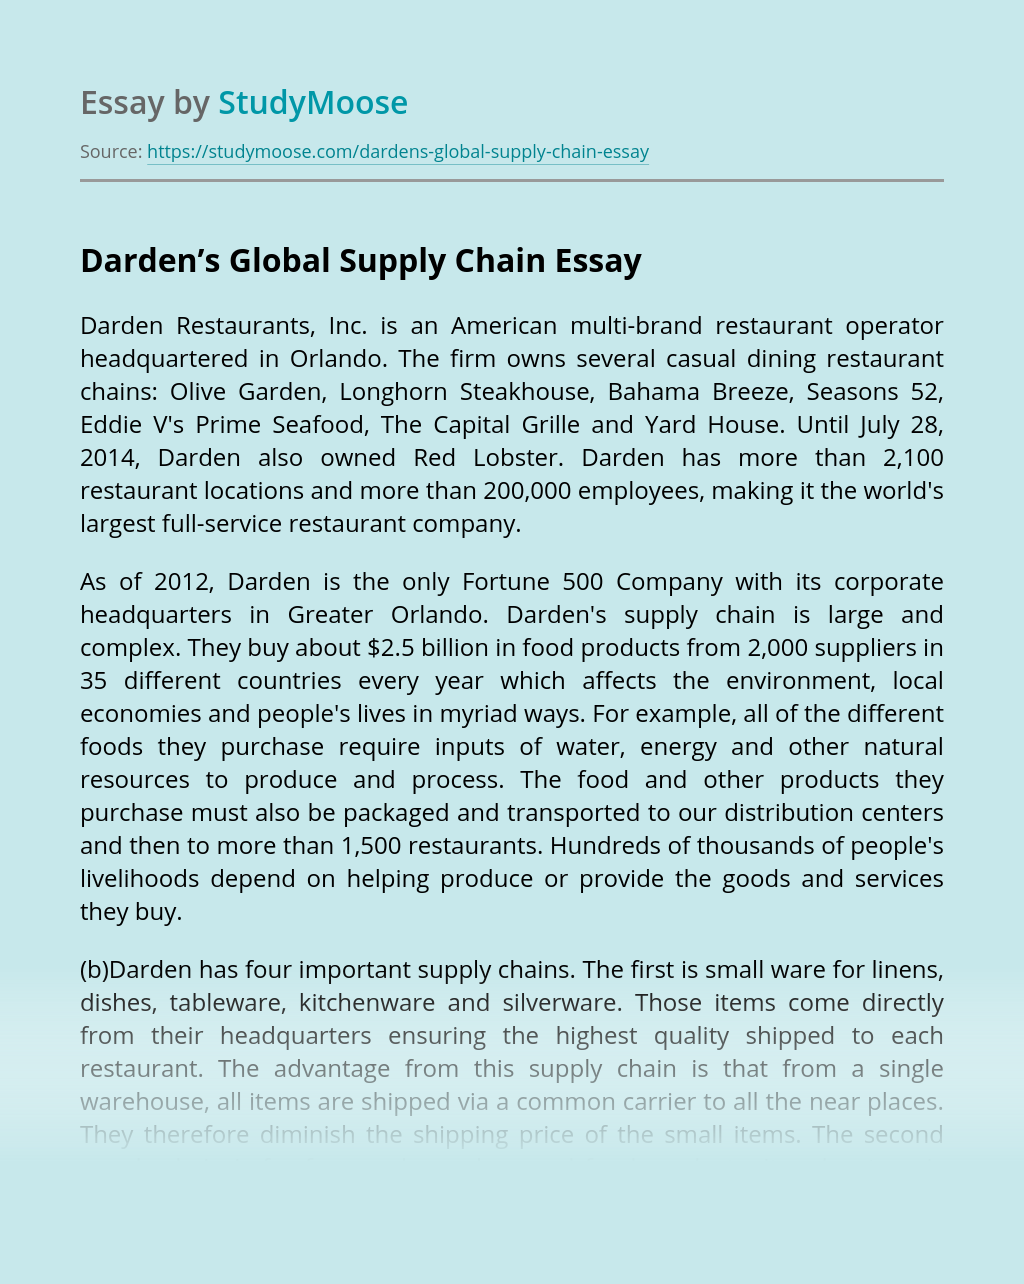 Darden's Global Supply Chain